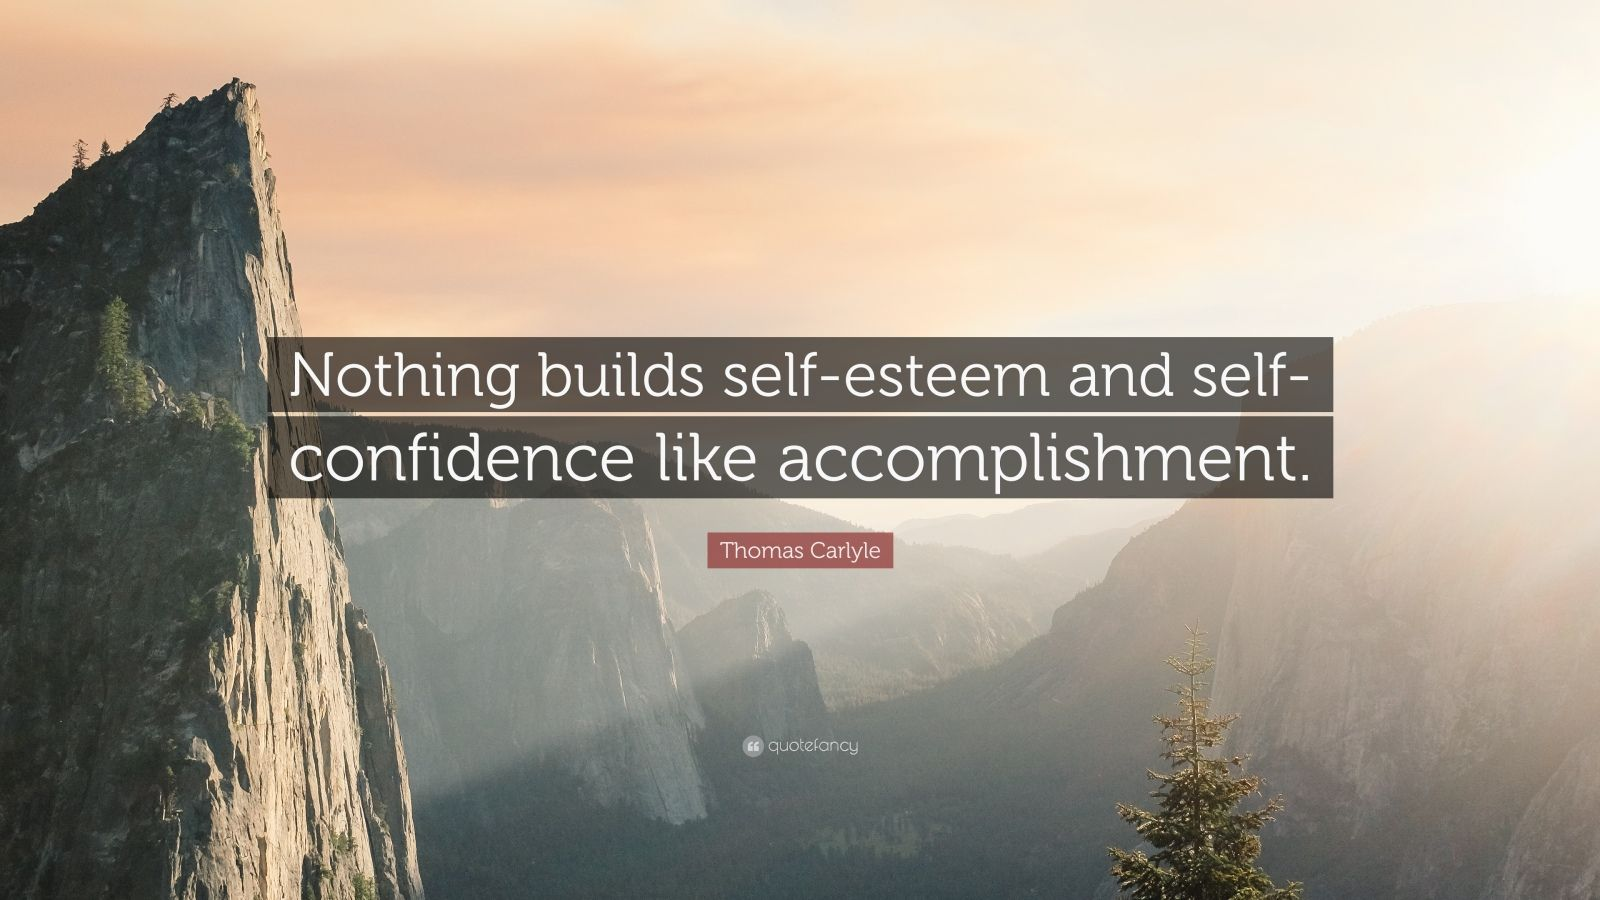 thomas carlyle quotes 100 quotefancy thomas carlyle quote nothing builds self esteem and self confidence like accomplishment